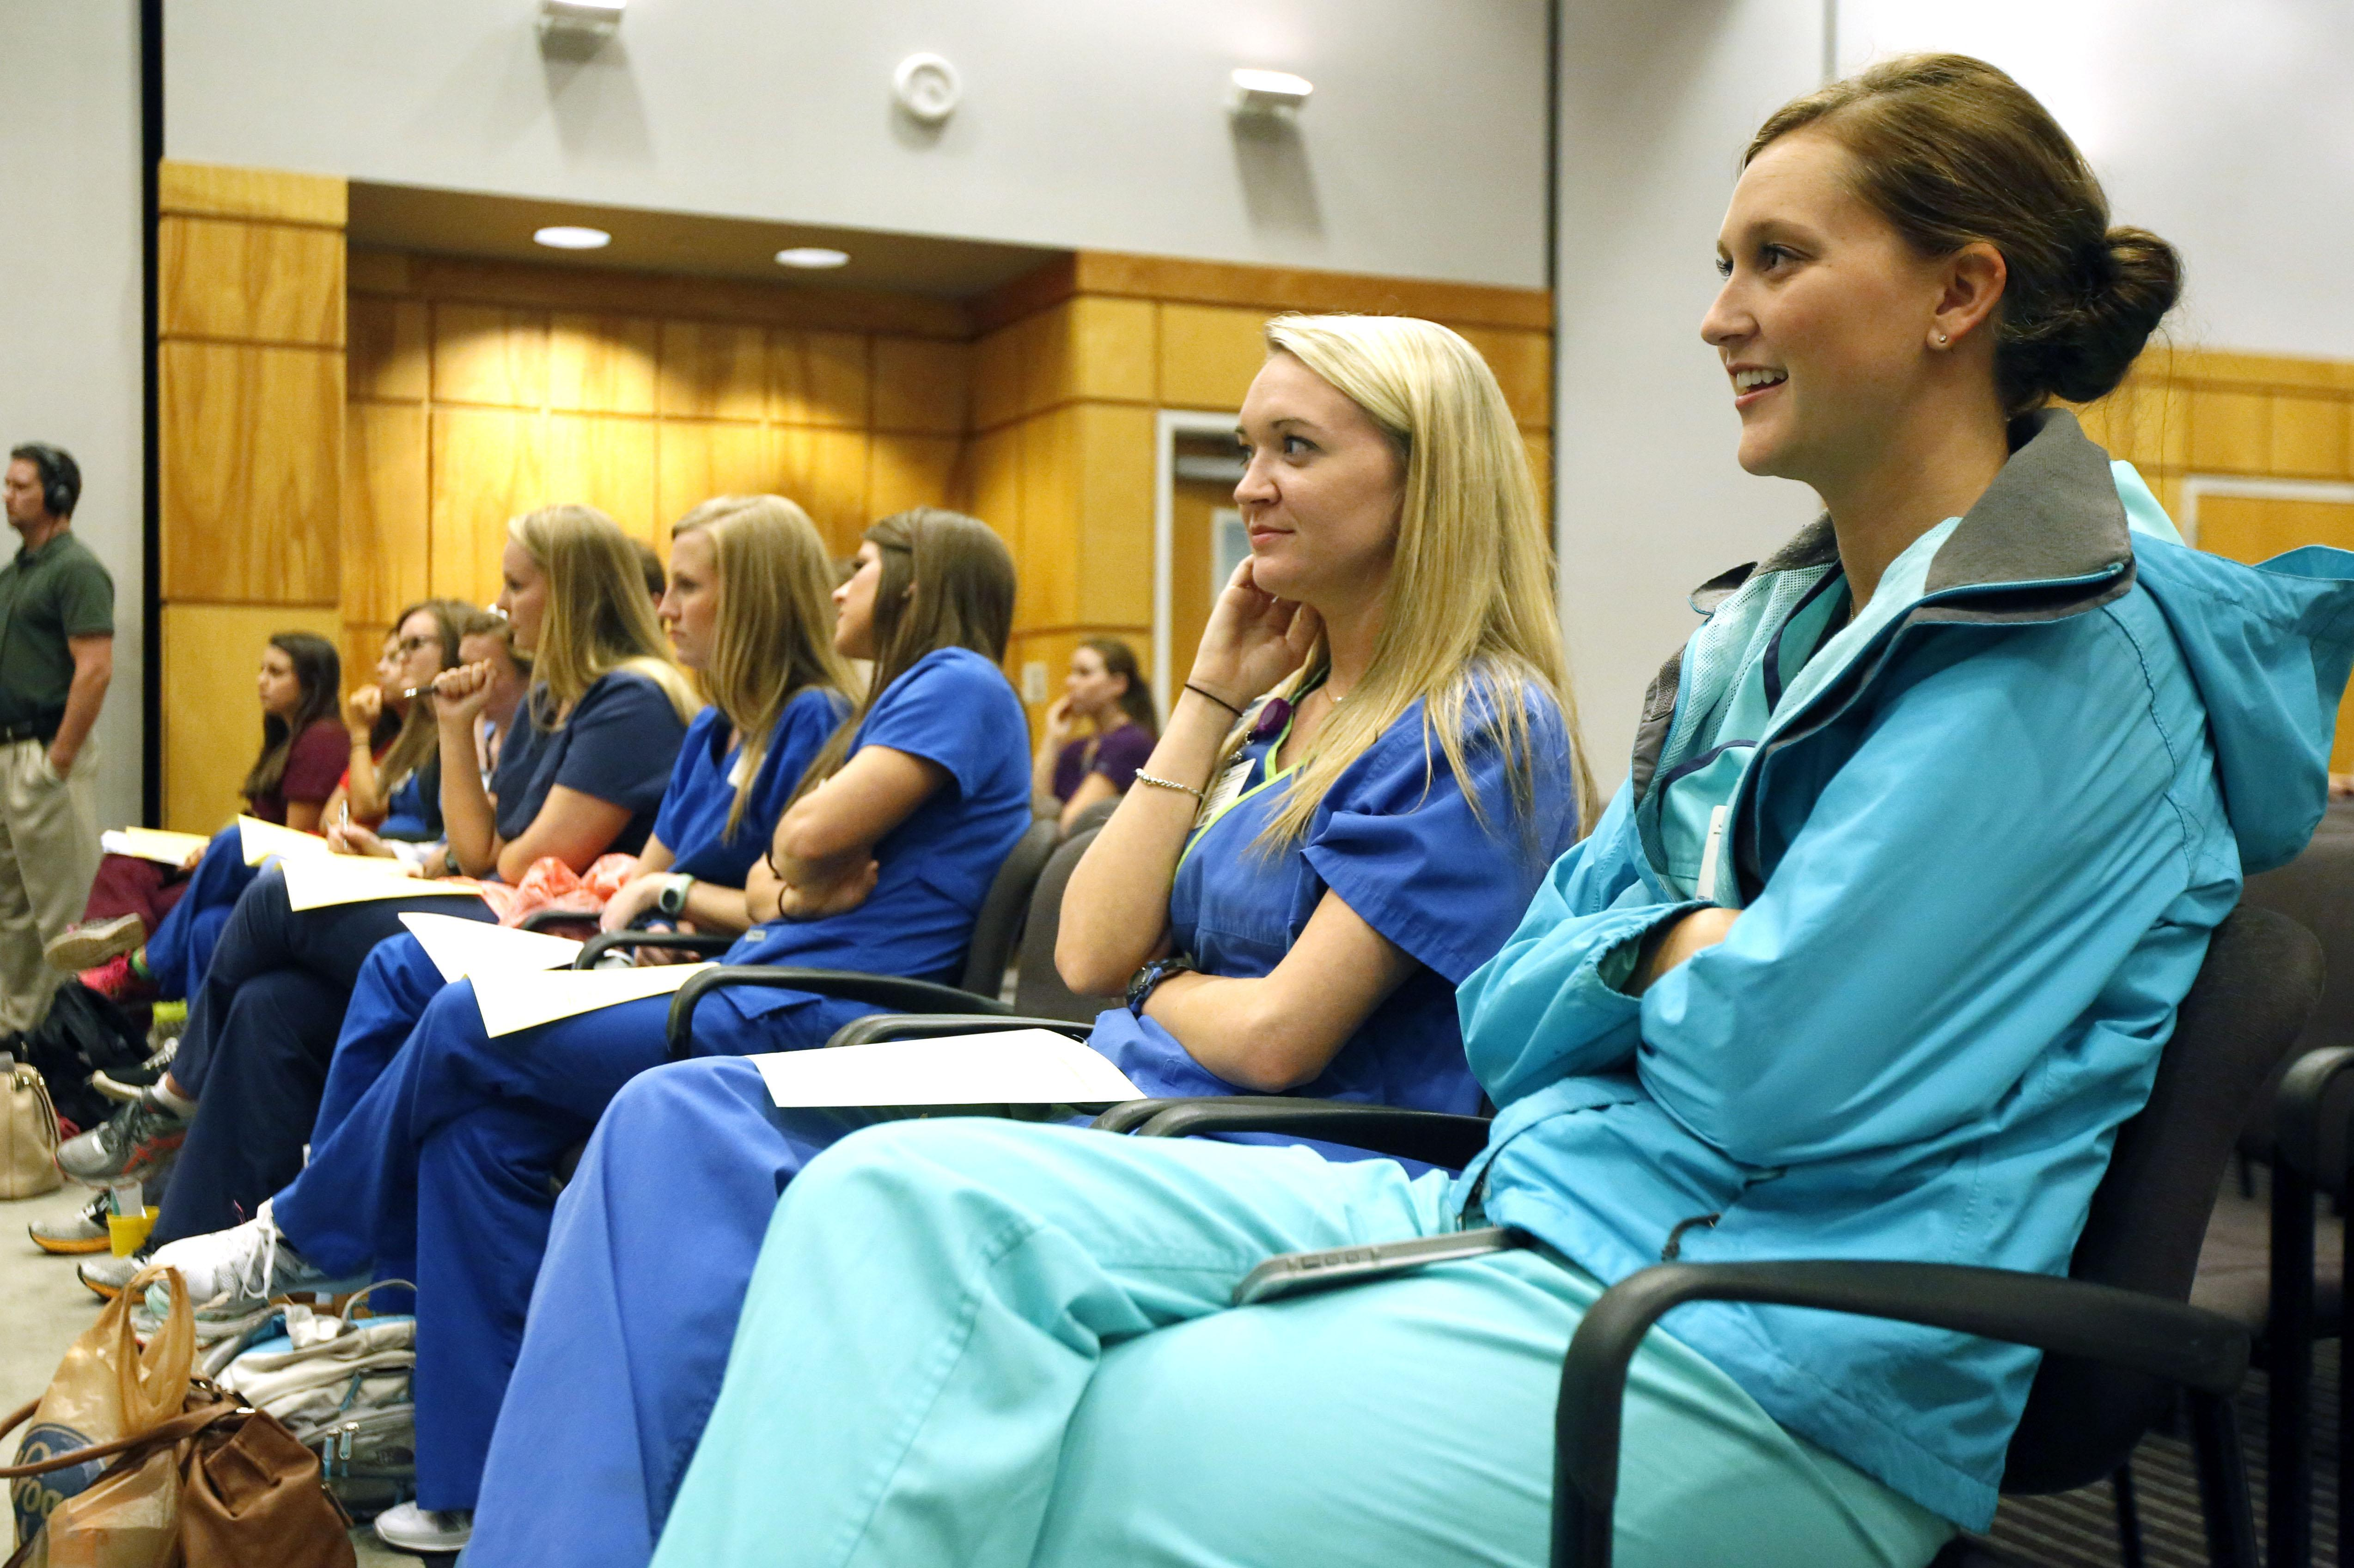 Women make up majority of U.S. medical students for first time